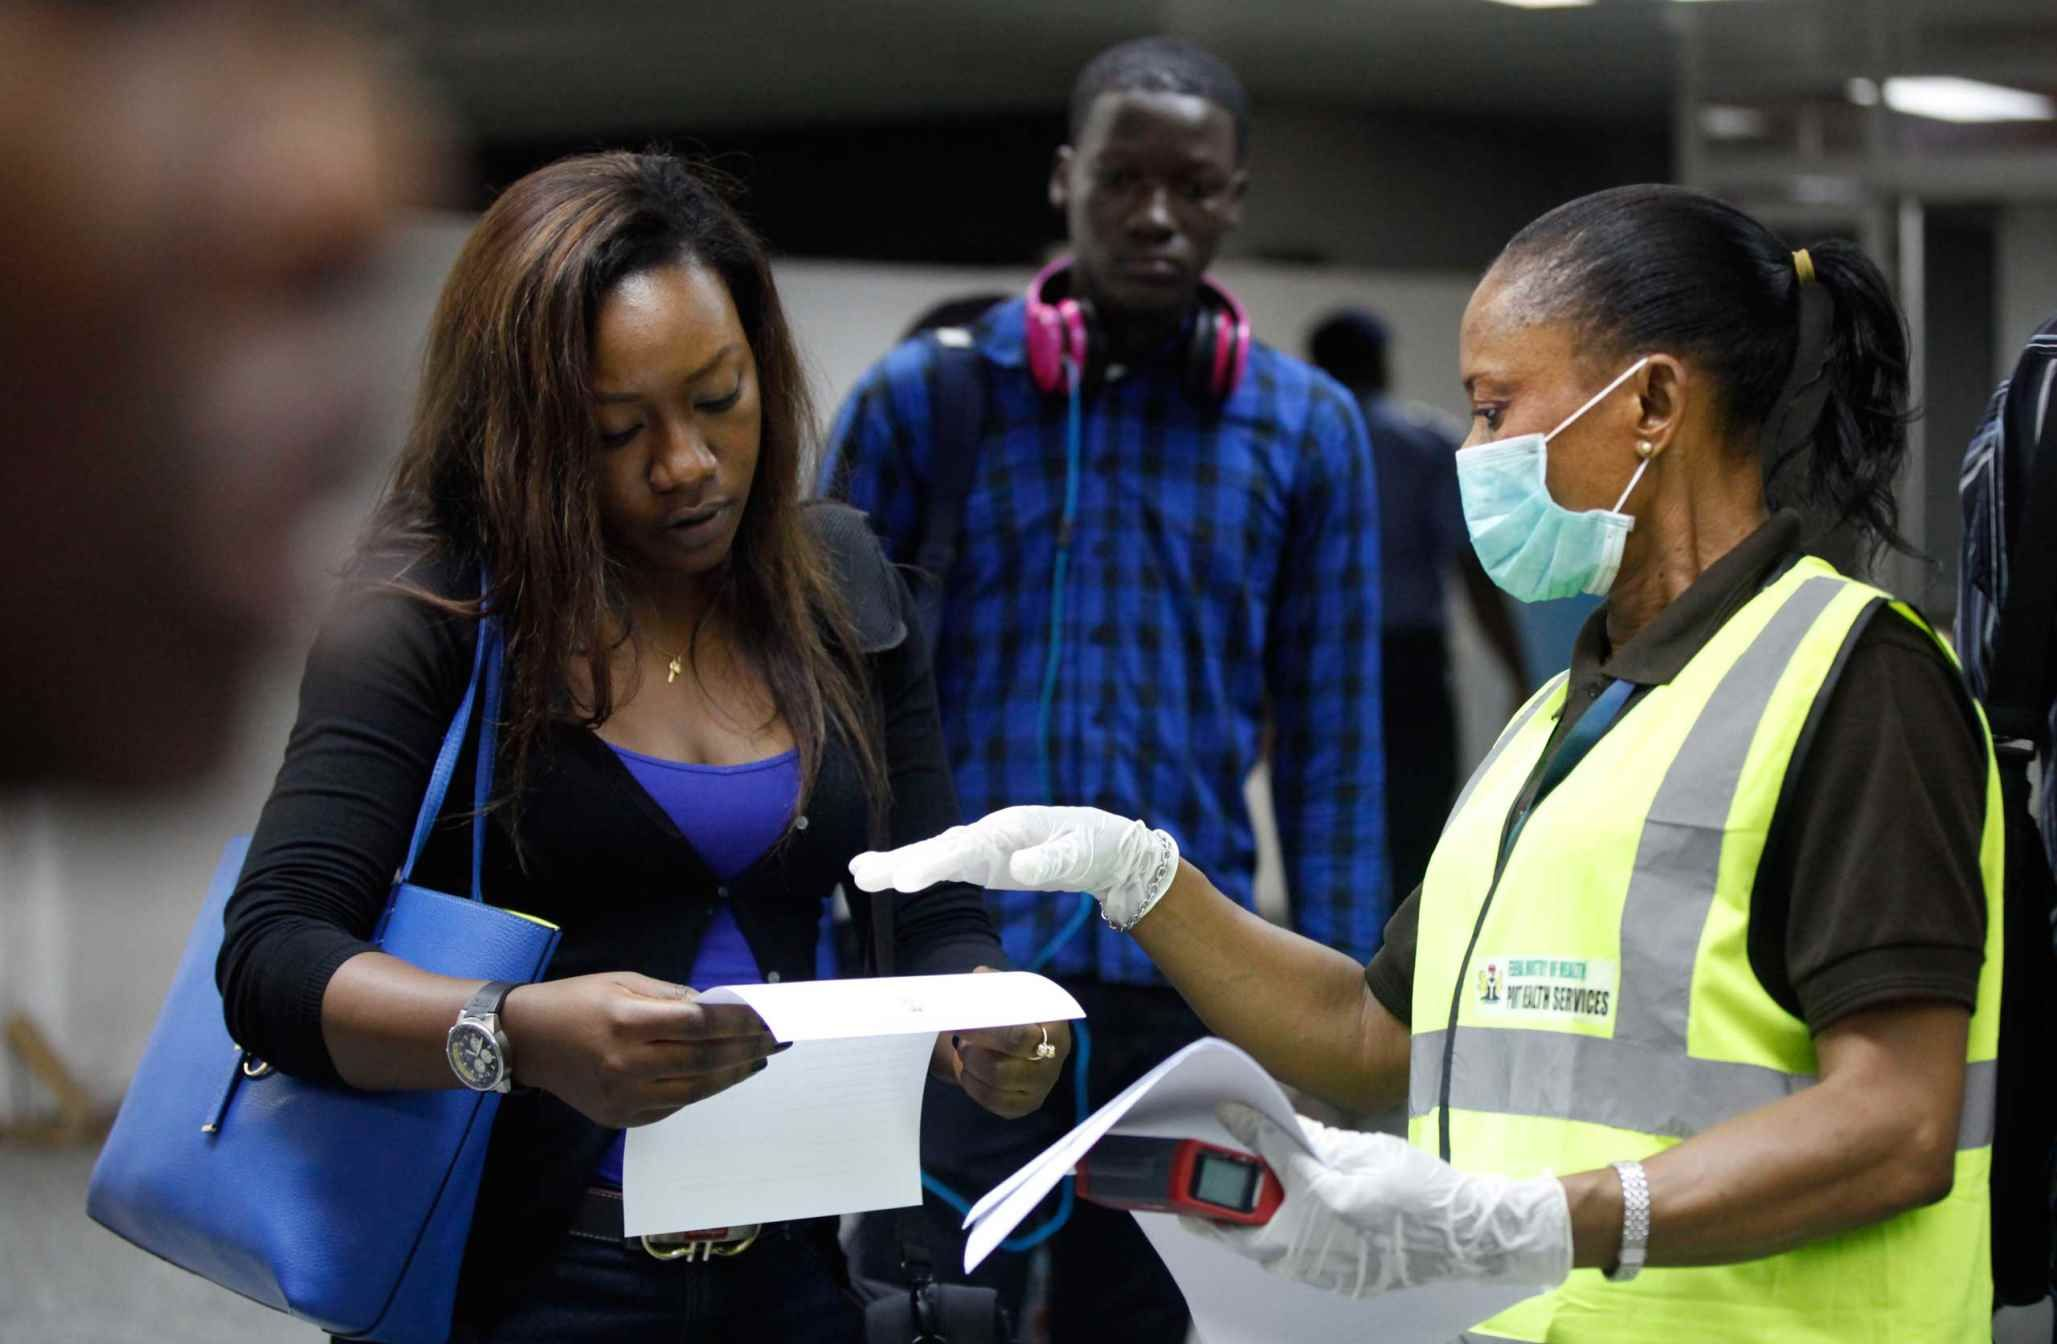 West Africa Ebola - Provided by Time Article